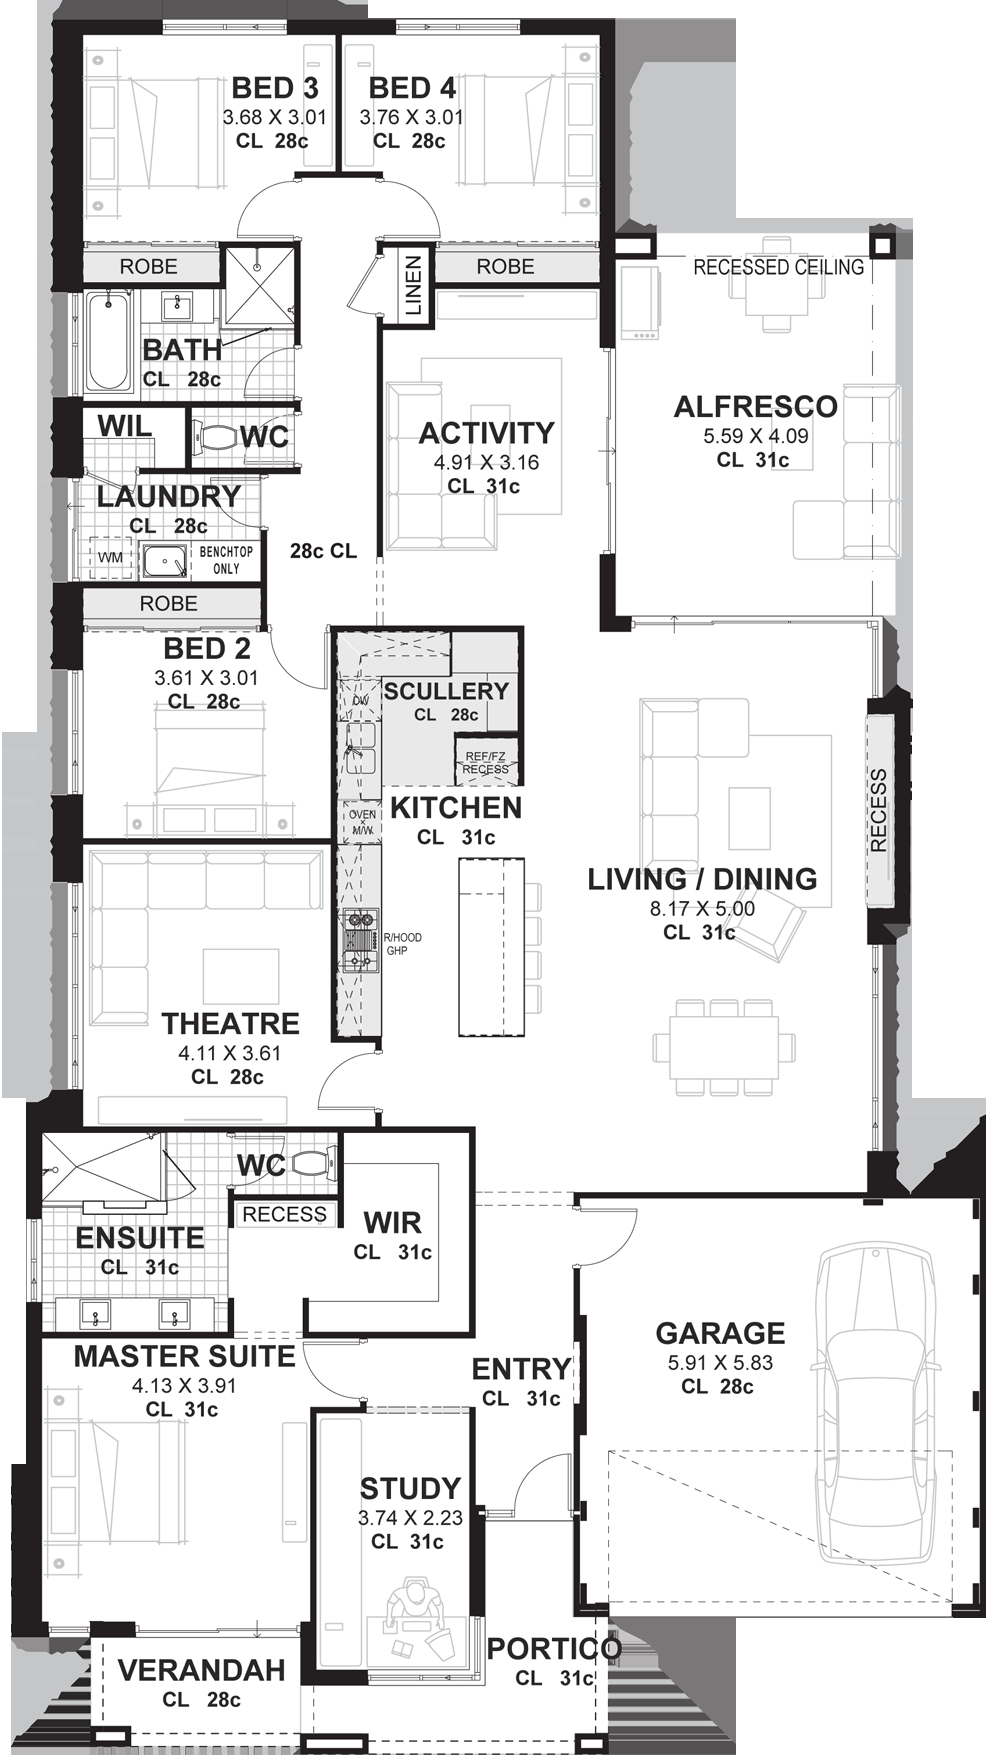 13.SIMPHOME.COM 4 bedroom house plans home designs perth vision one homes